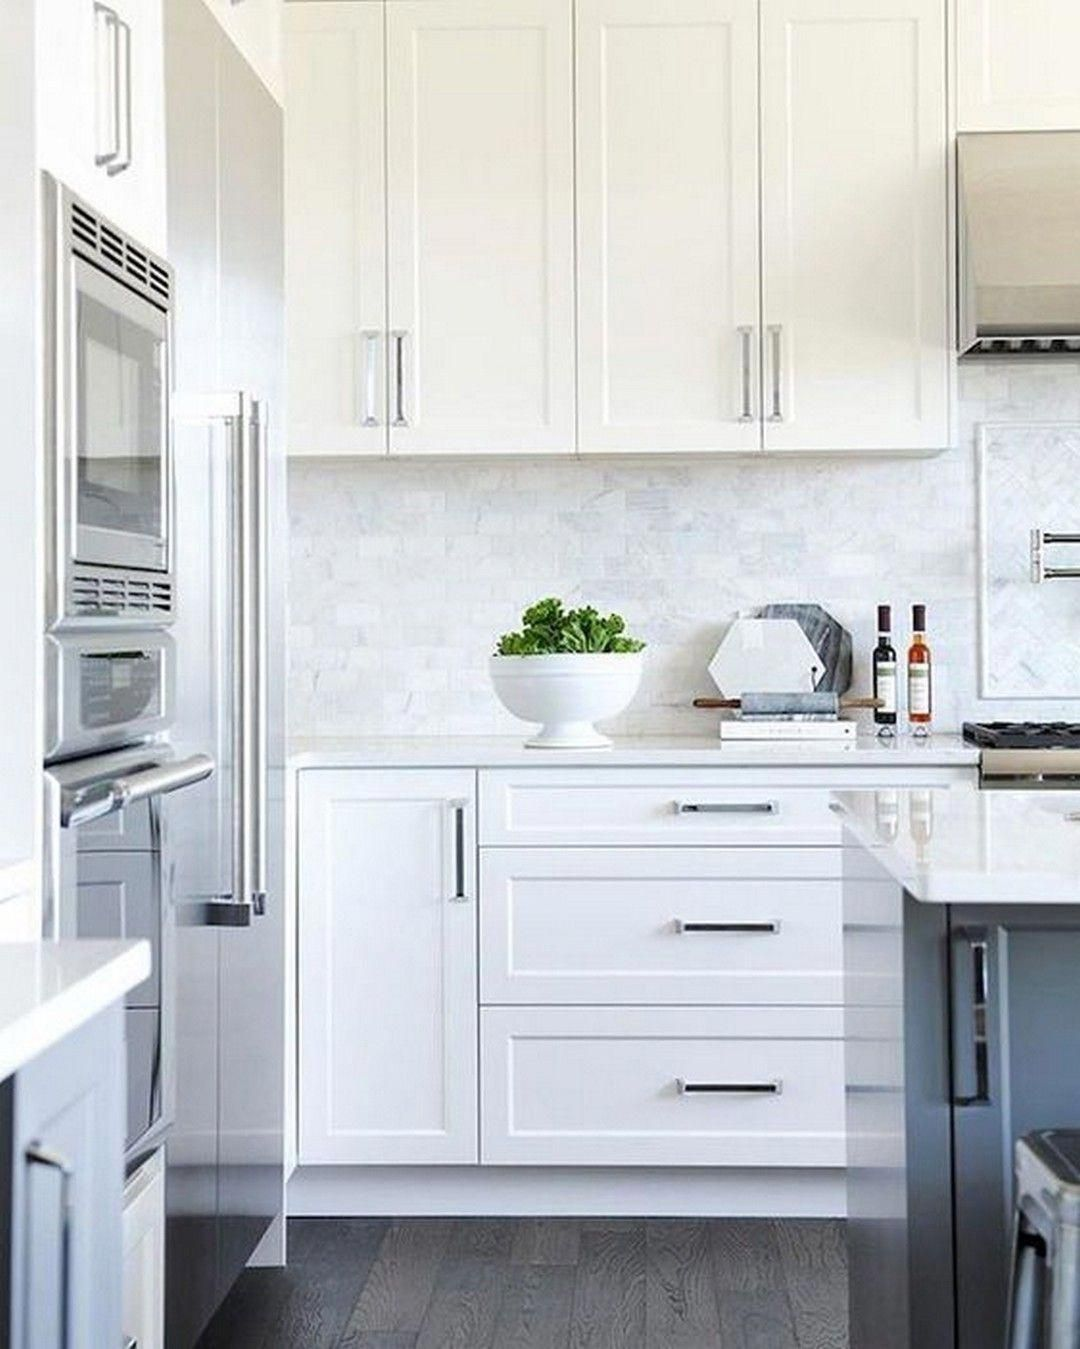 This Type Of Modern Kitchens Is Certainly A Notable Design Alternative Mode White Shaker Kitchen Cabinets White Shaker Kitchen Antique White Kitchen Cabinets